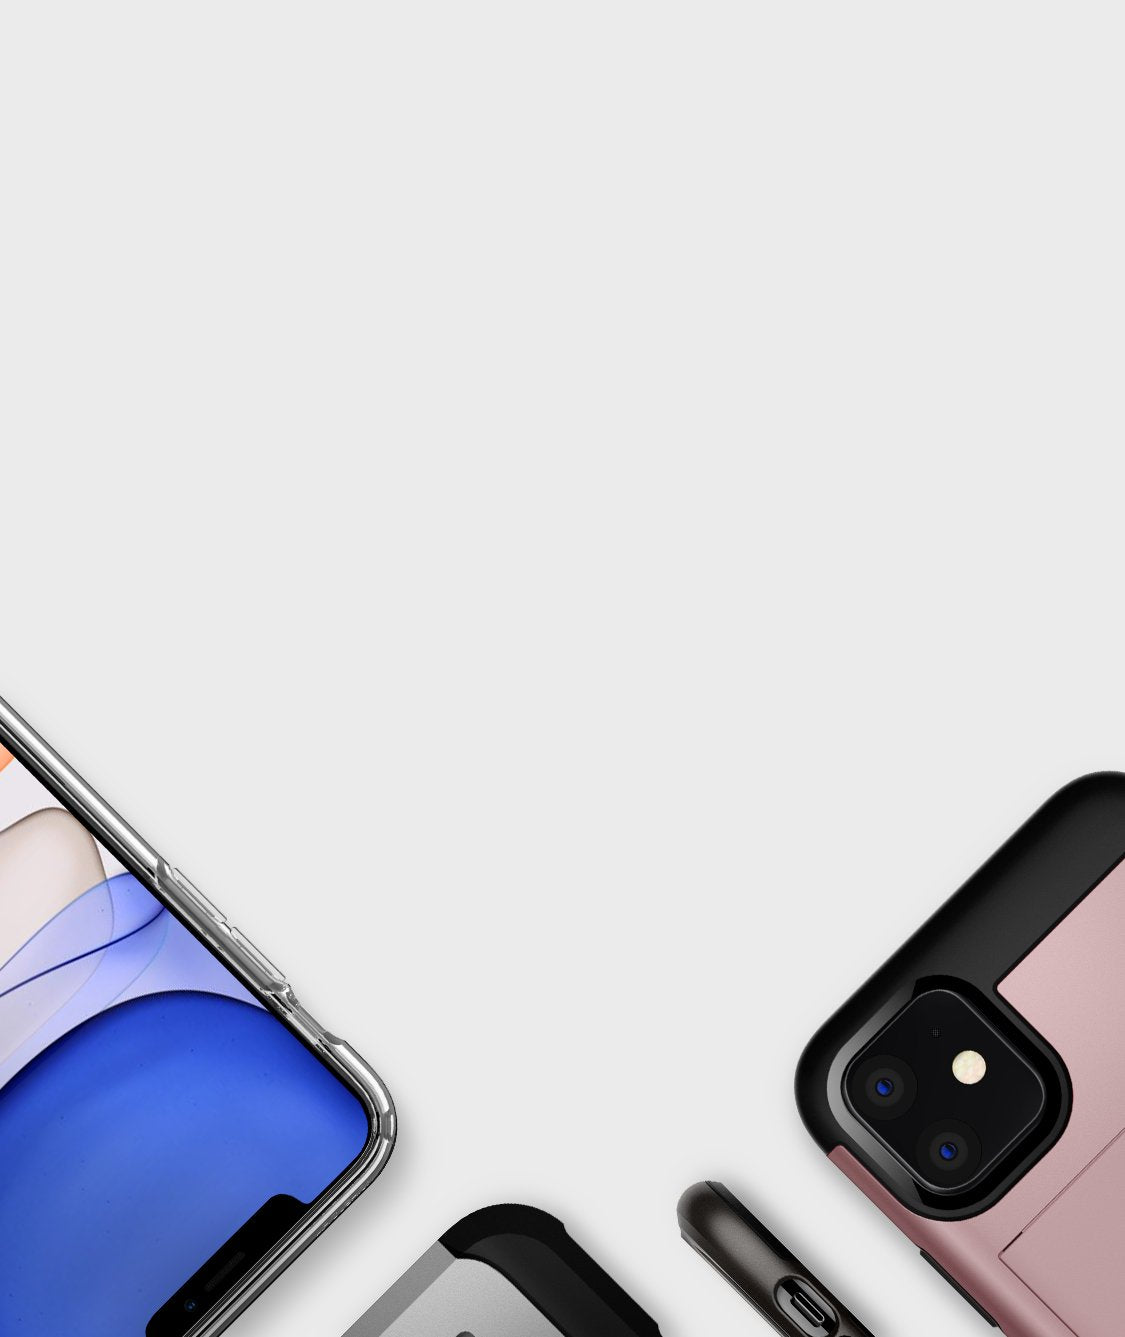 Spigen Cases for iPhone 11